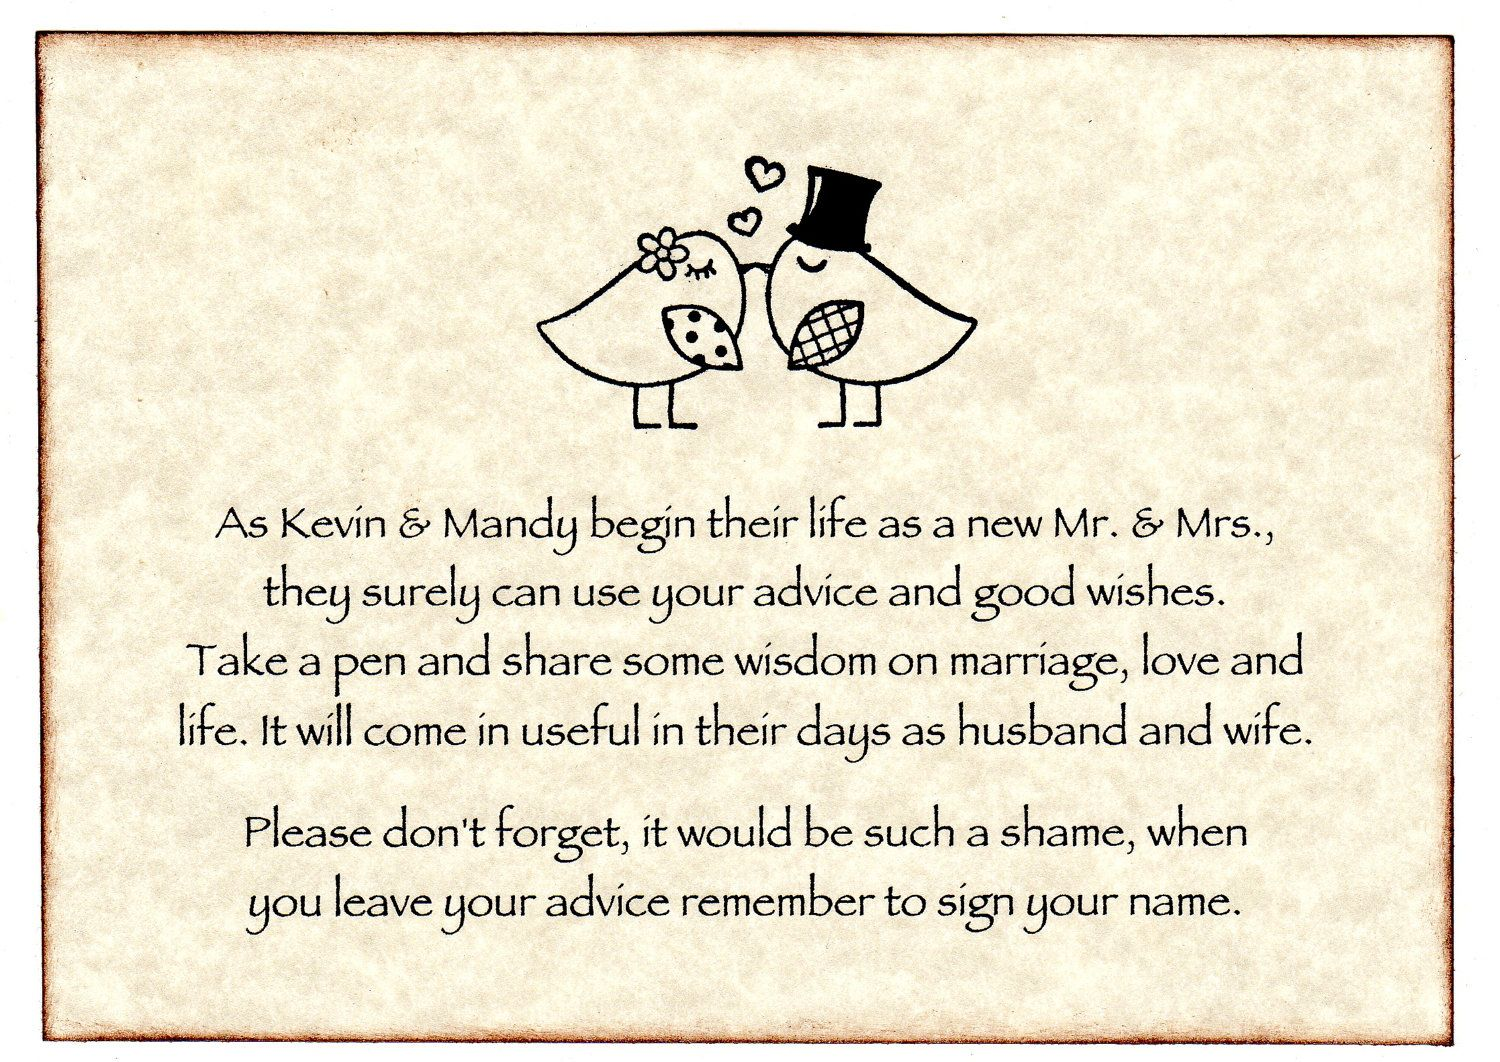 wedding card message about love and destiny best wishes for couple – Wedding Card Wish